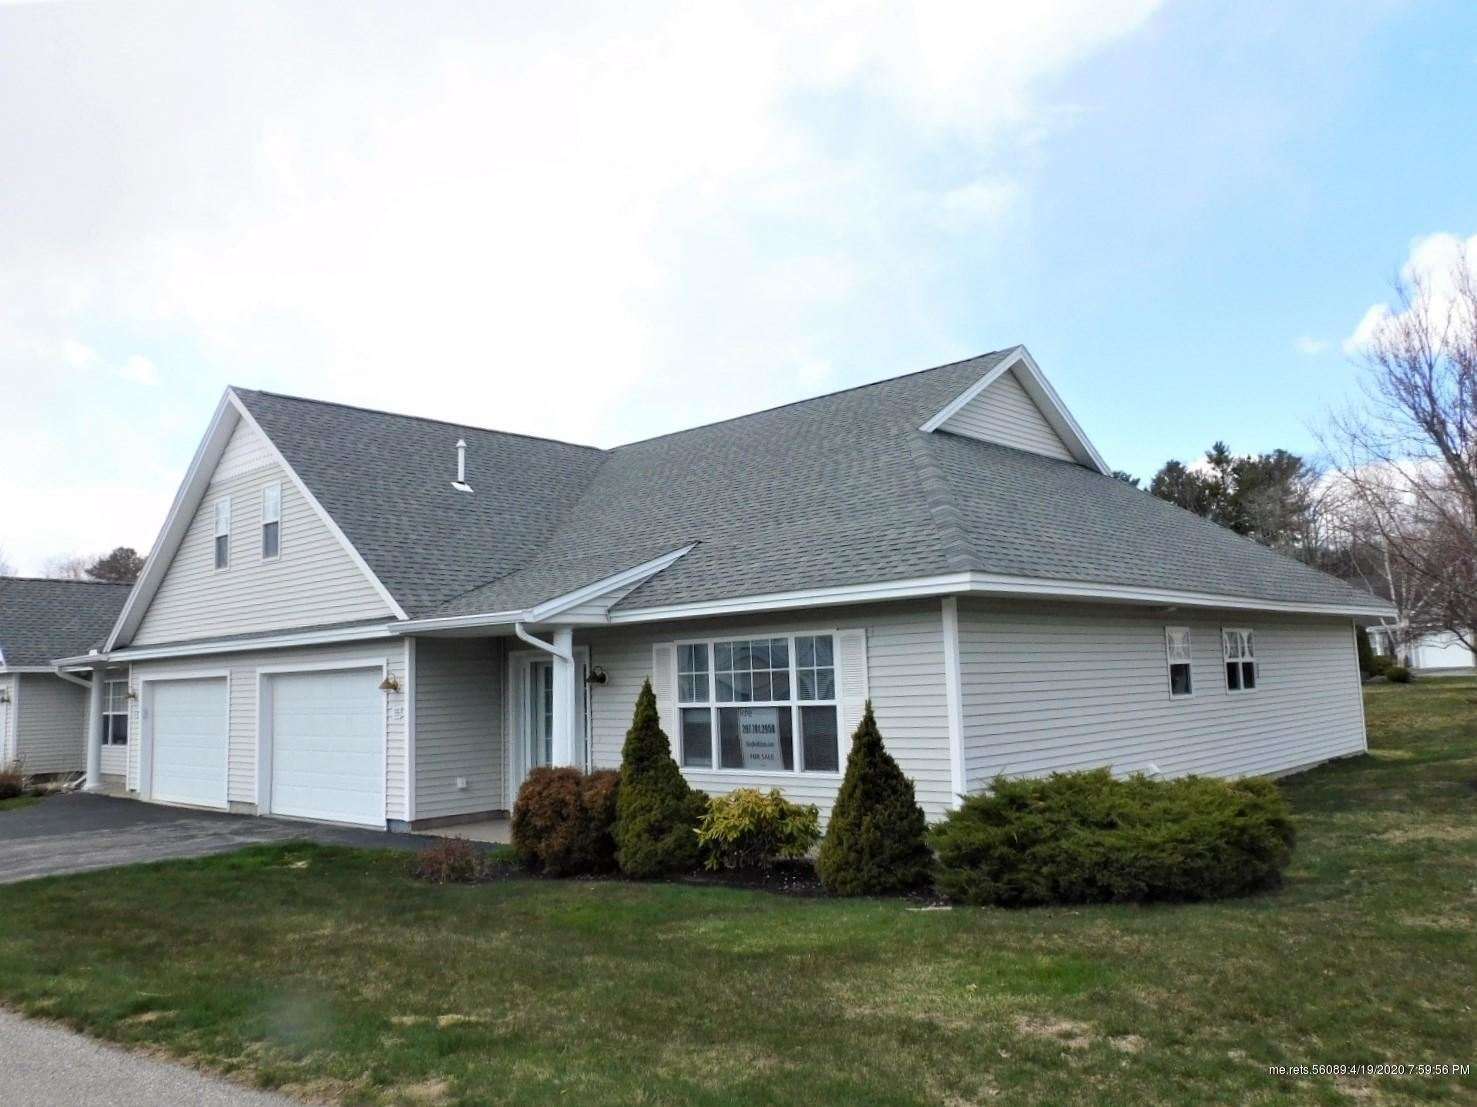 Photo of 35 Kavanaugh Road #35, Old Orchard Beach, ME 04064 (MLS # 1443792)